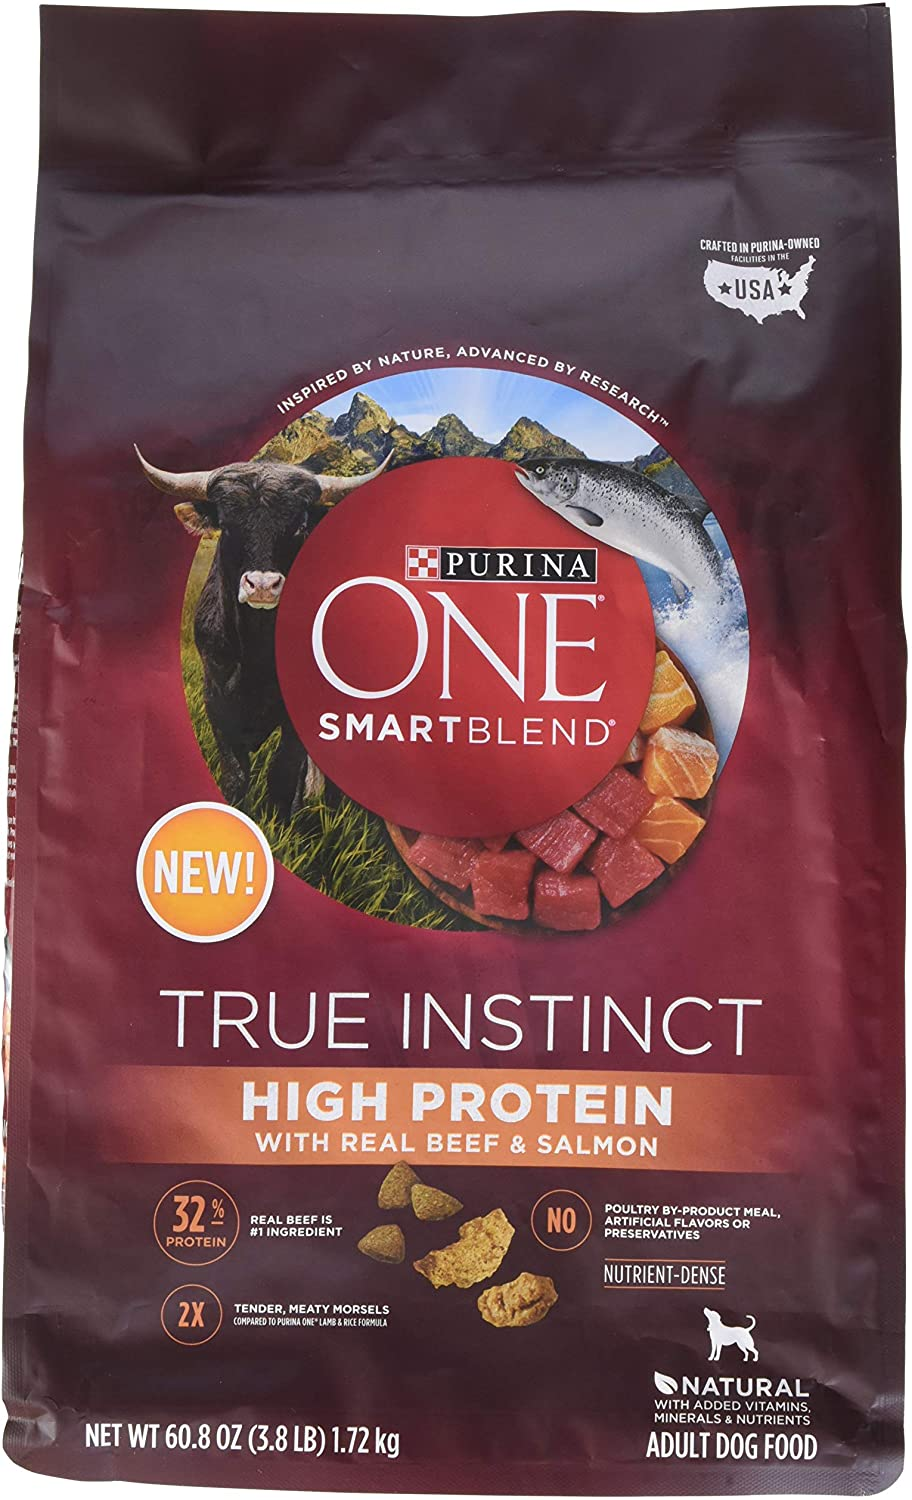 Purina ONE Natural, High Protein Dry Dog Food, SmartBlend True Instinct With Real Beef & Salmon, 3.8 lb